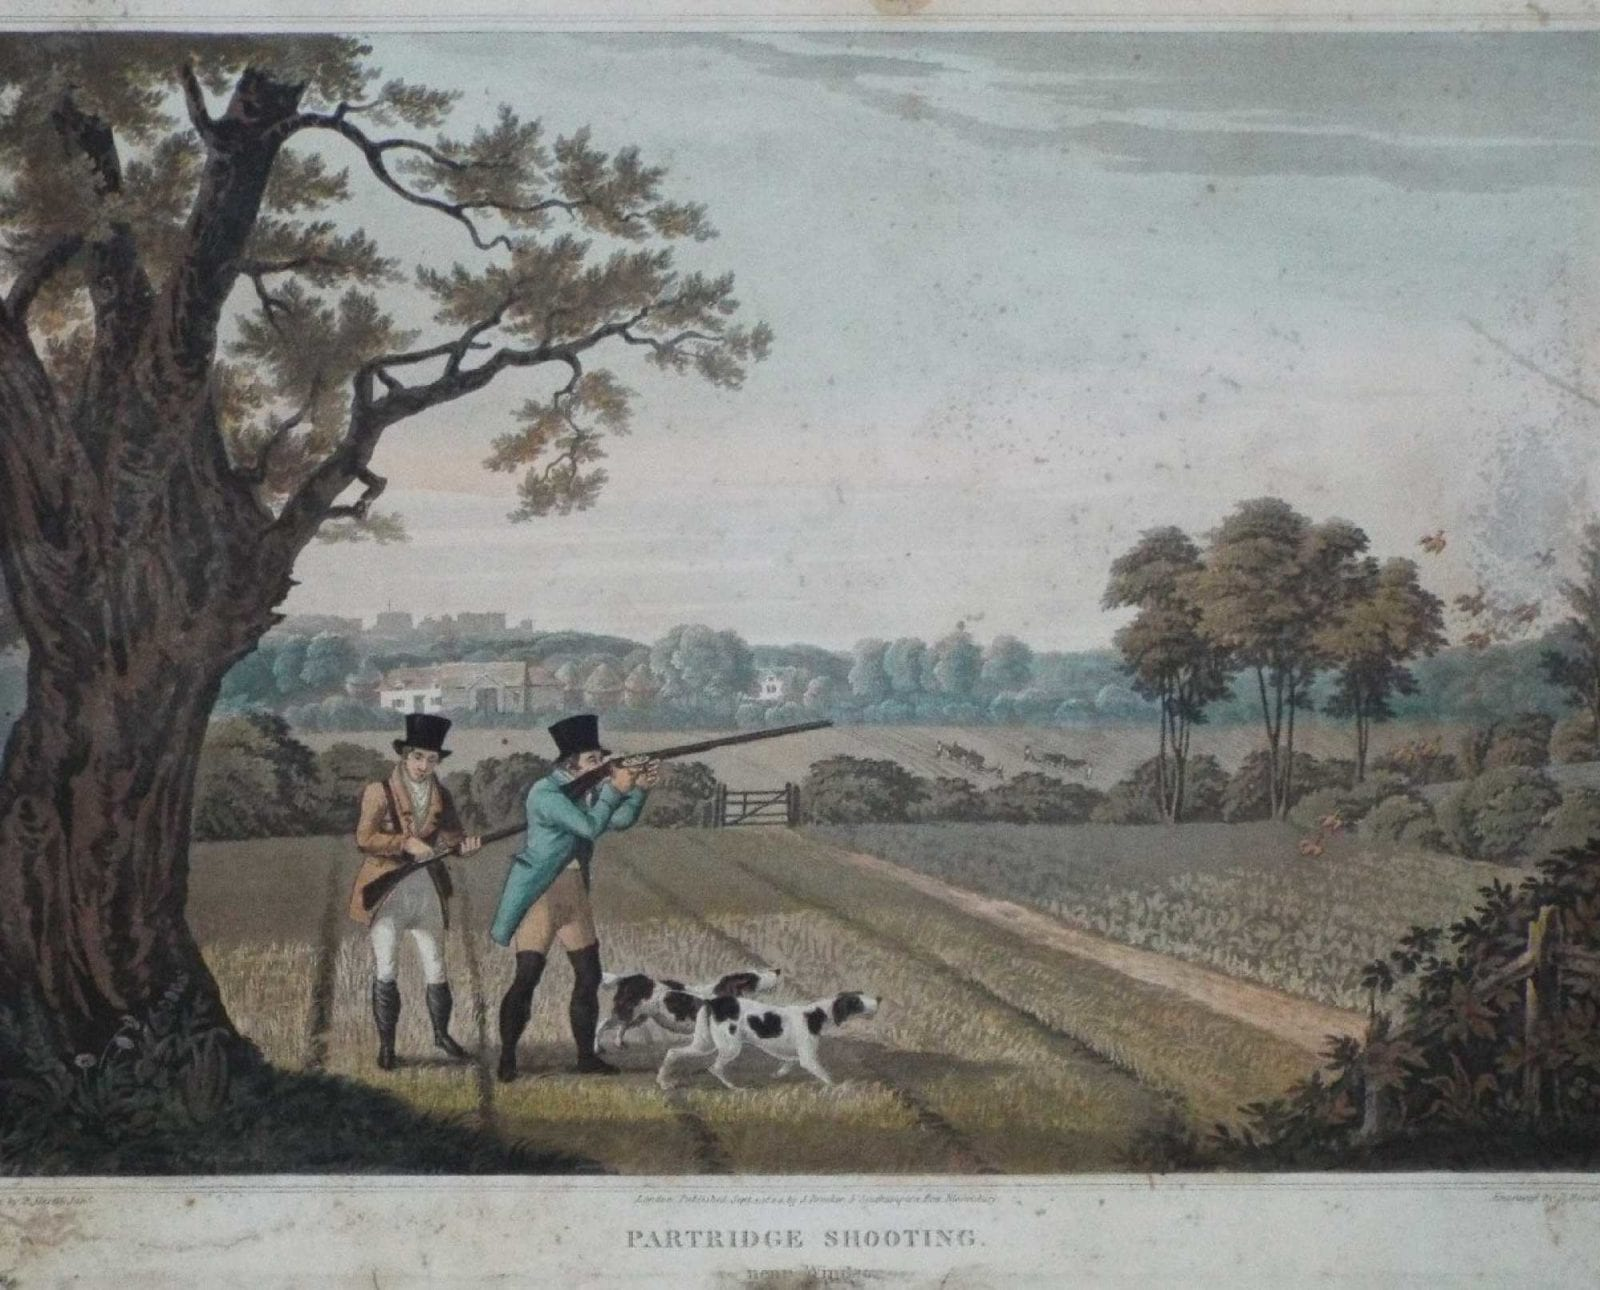 Hunters in the United Kingdom on a partridge shoot with hunting dogs